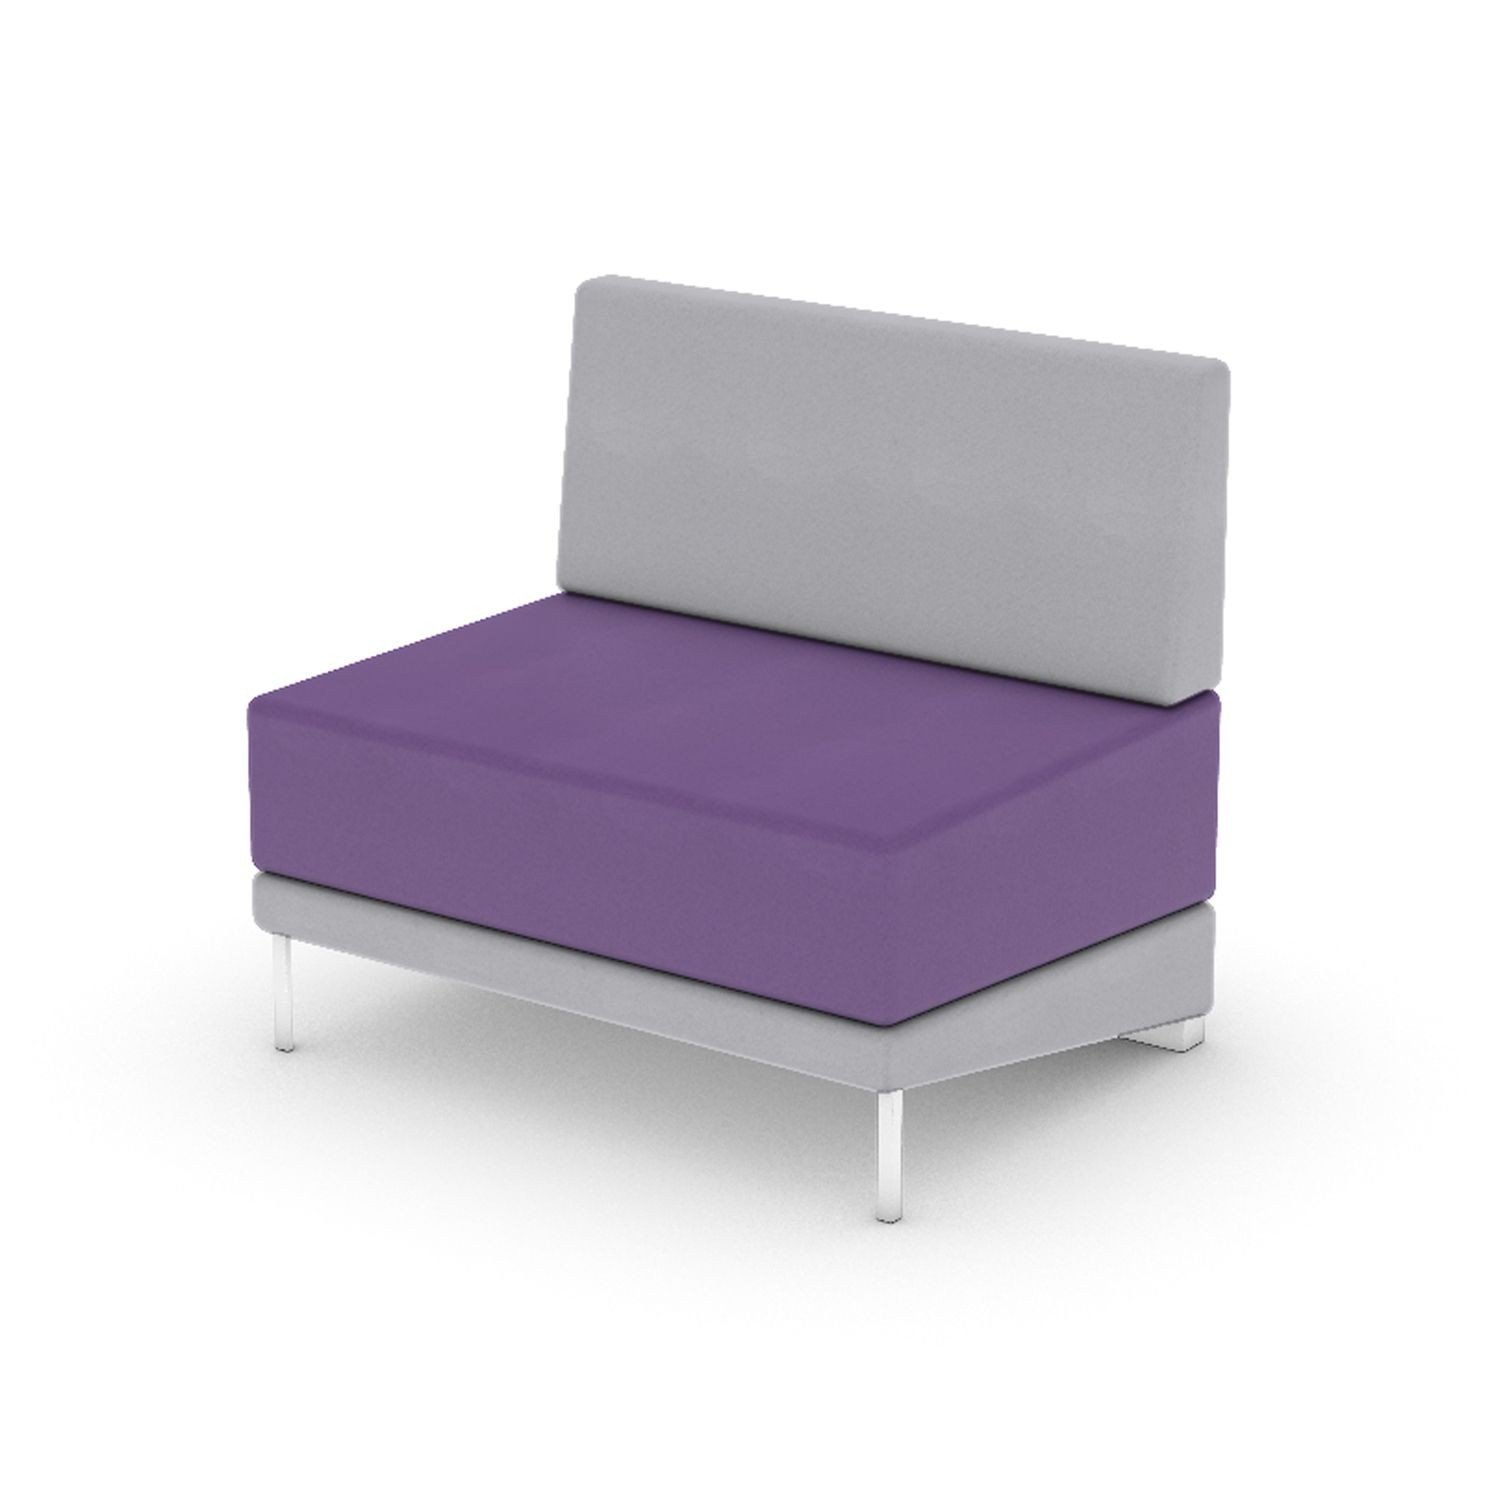 Soft Seating Mount Small Seating Unit